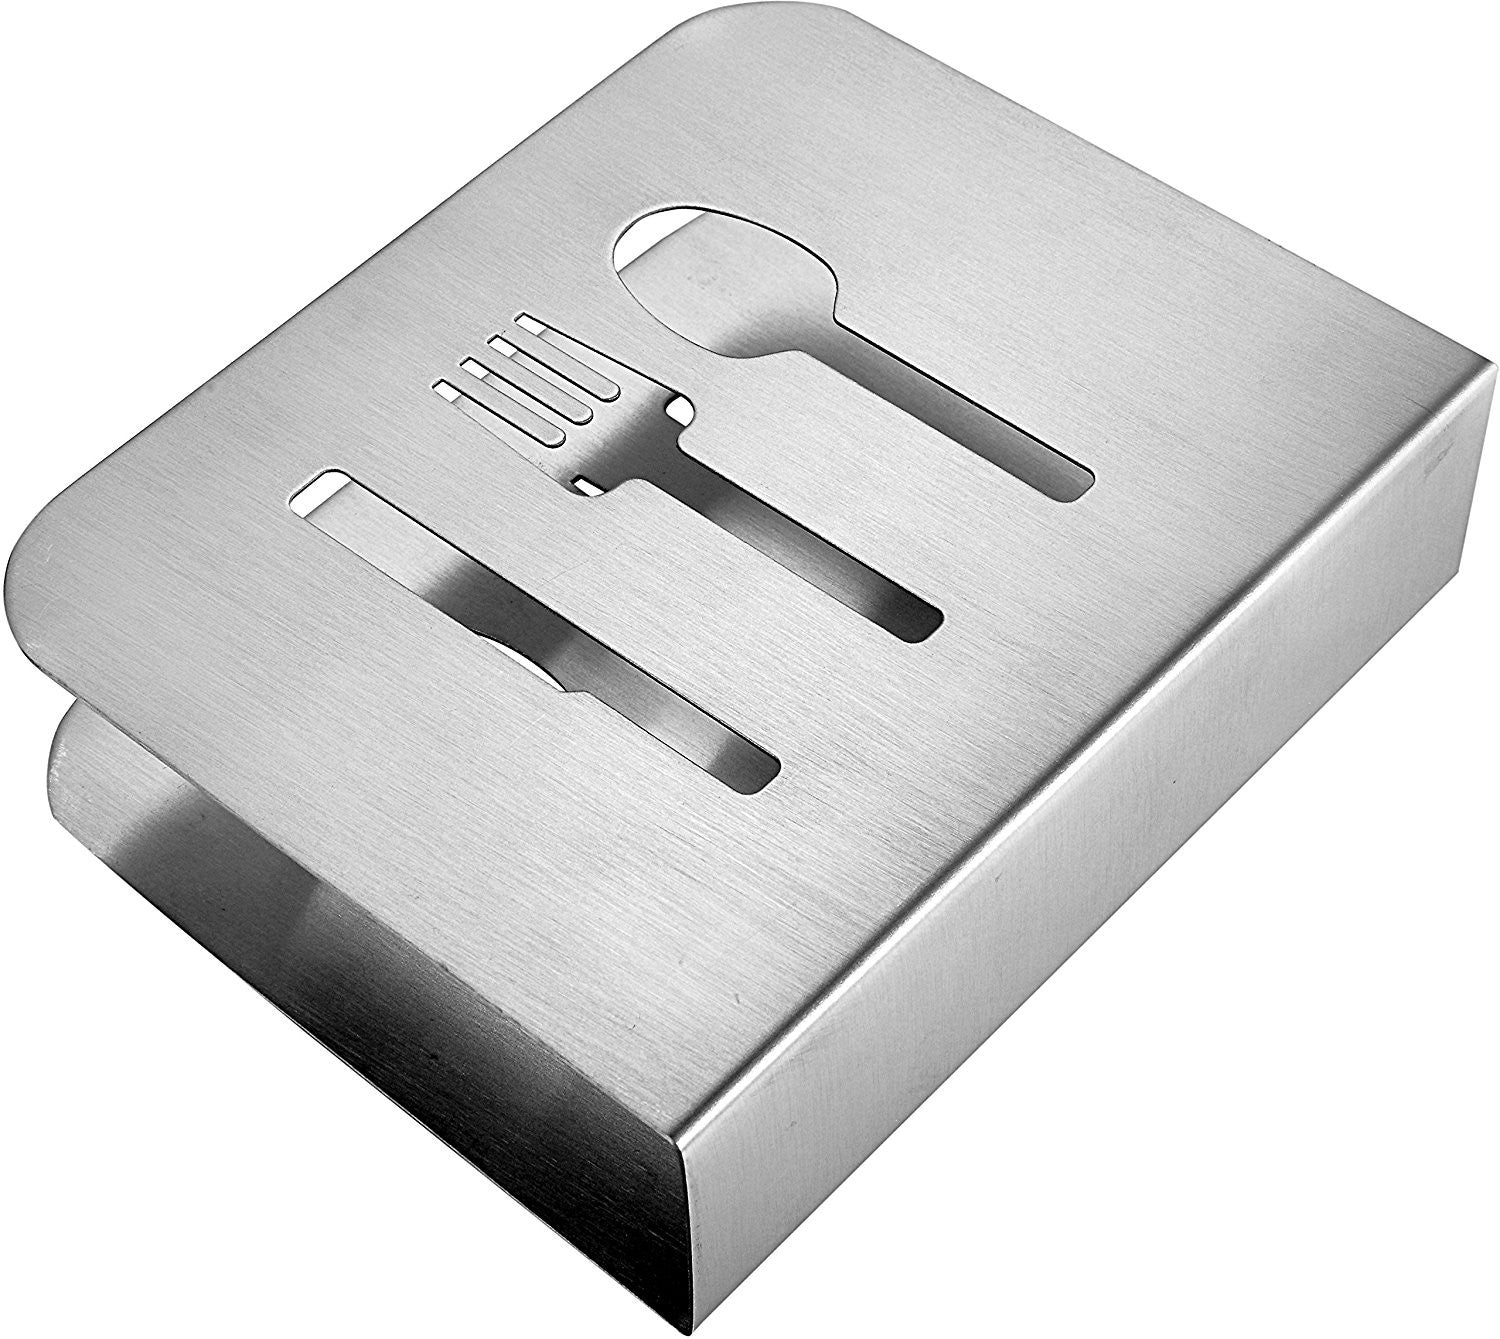 Pro Chef Kitchen Tools Stainless Steel Modern Napkin Holder Serviett